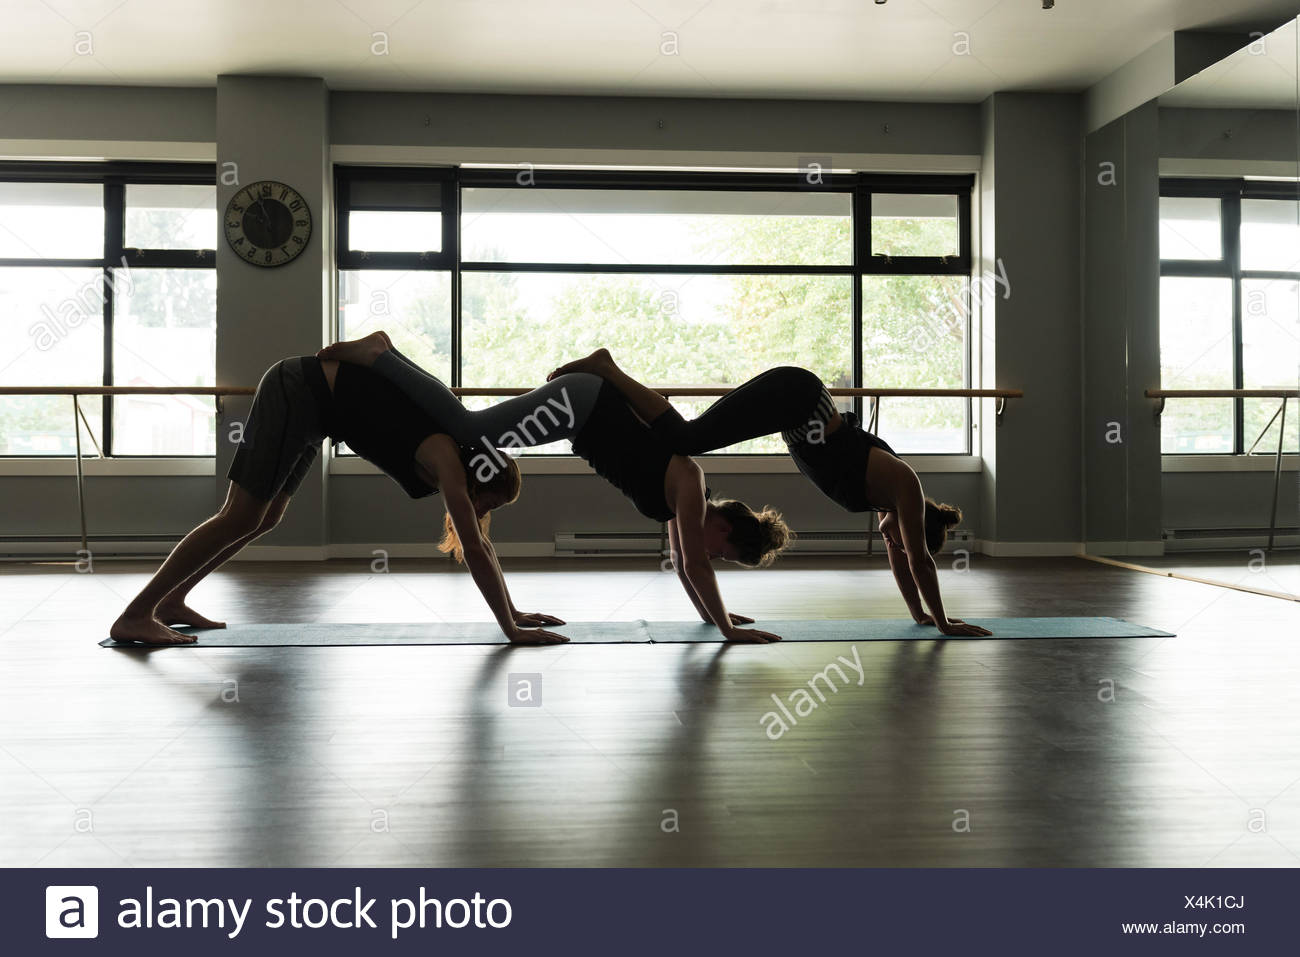 Group of fit people practicing acroyoga - Stock Image